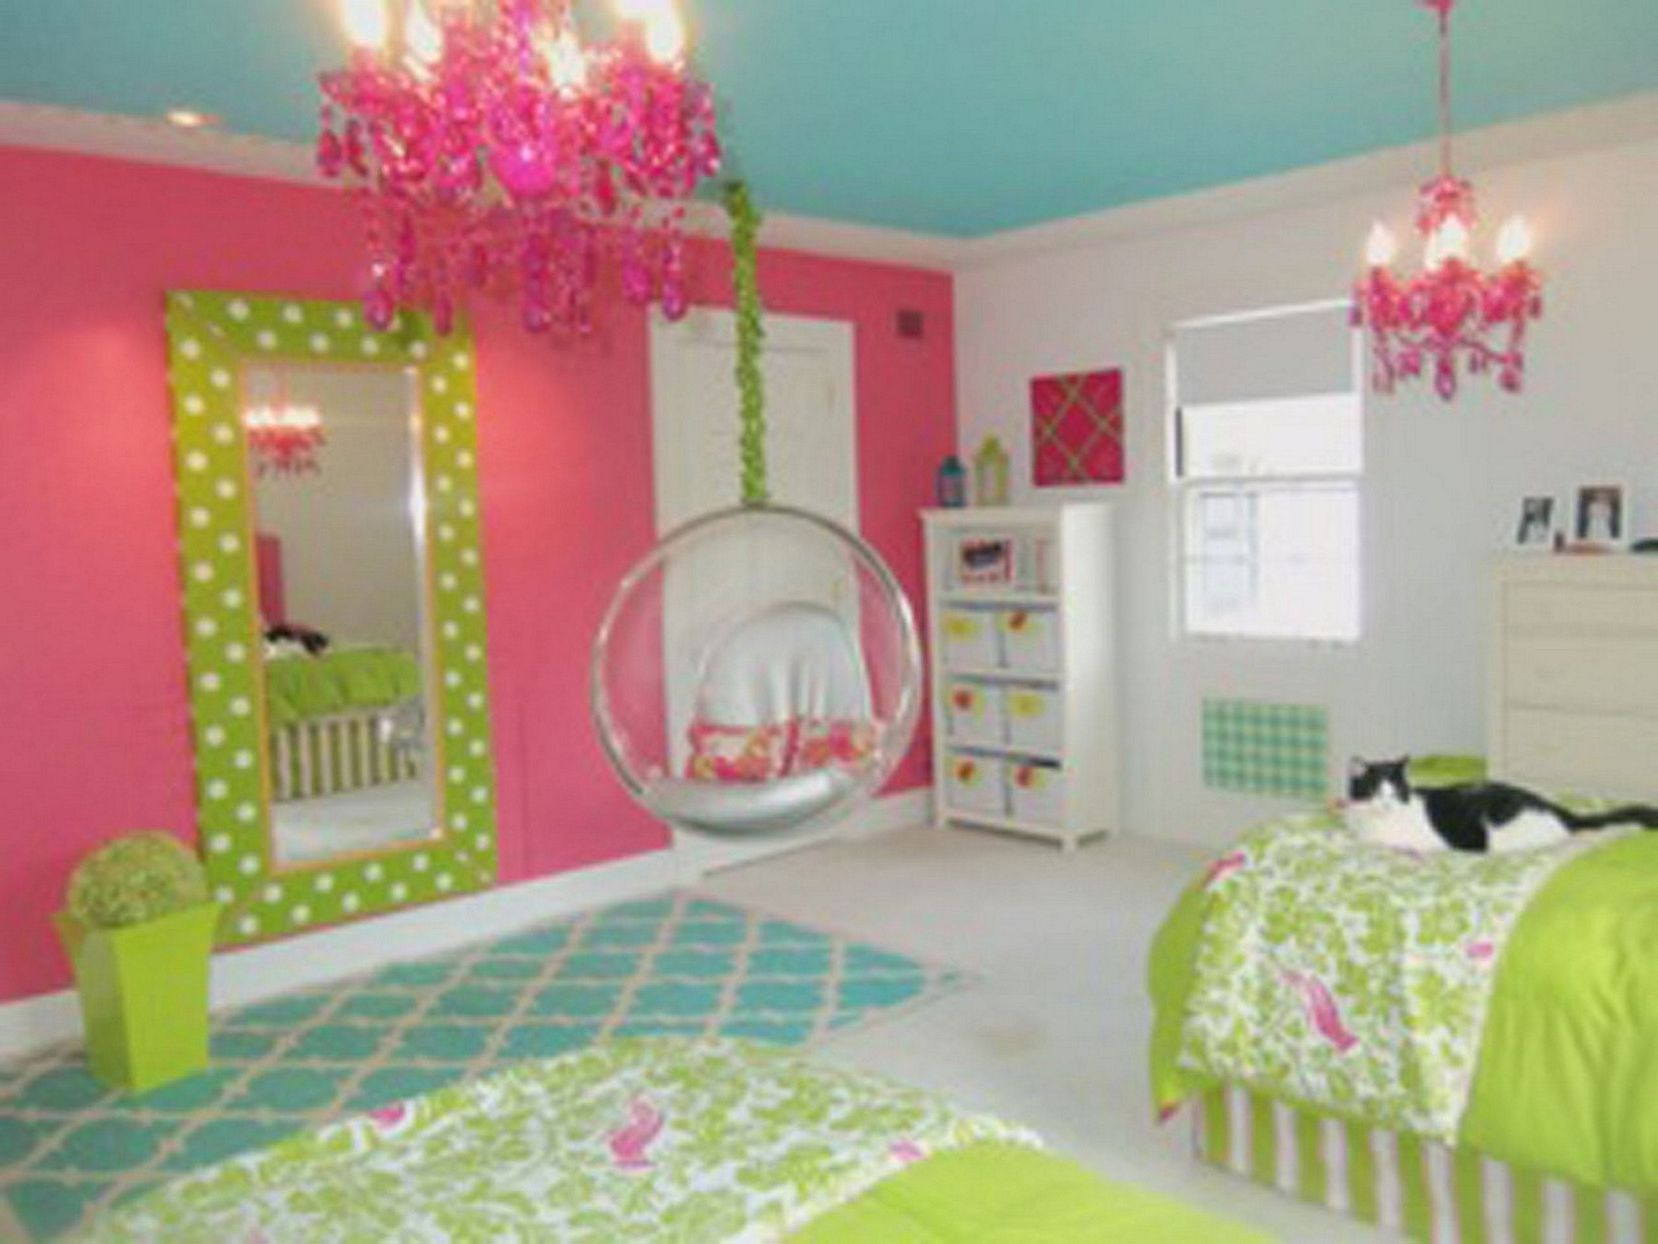 Bedroom Ideas For Teenage Girls Green teens room girls bedroom ideas teenage girl diy decor for pictures